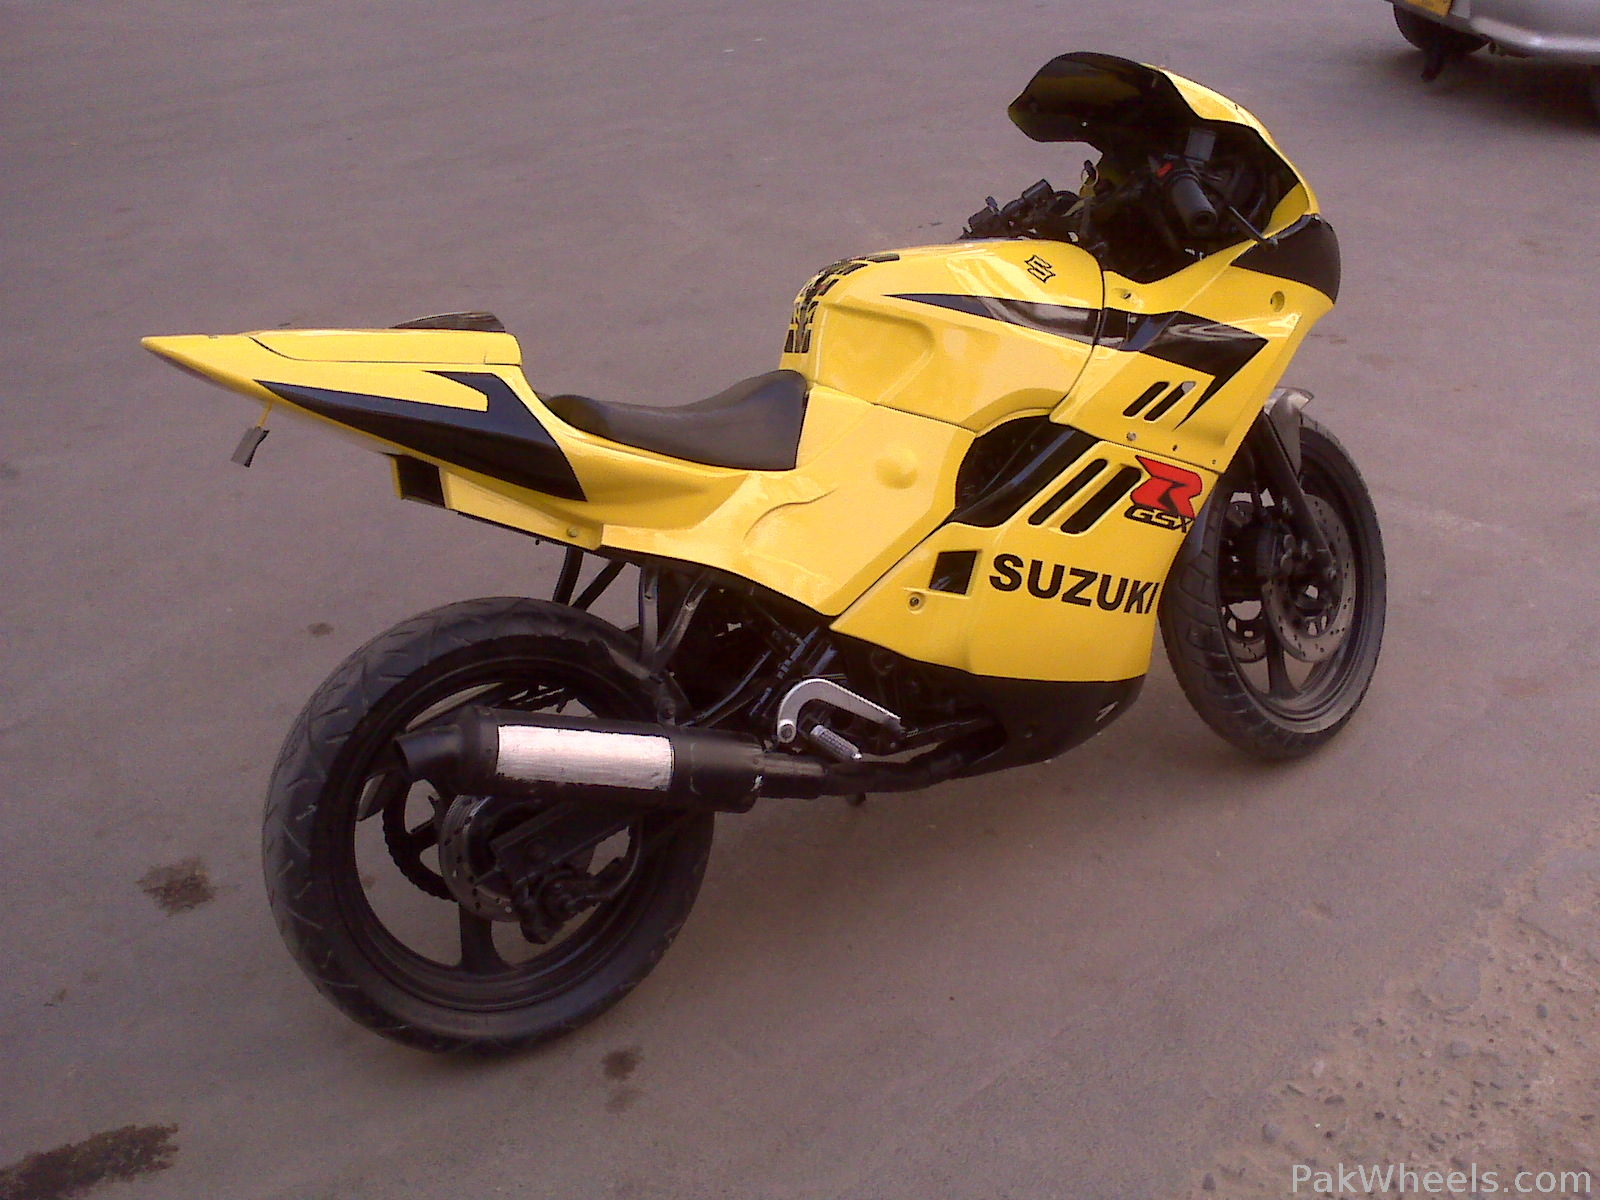 used suzuki gsxr 250cc 1997 bike for sale in karachi 87260 pakwheels. Black Bedroom Furniture Sets. Home Design Ideas